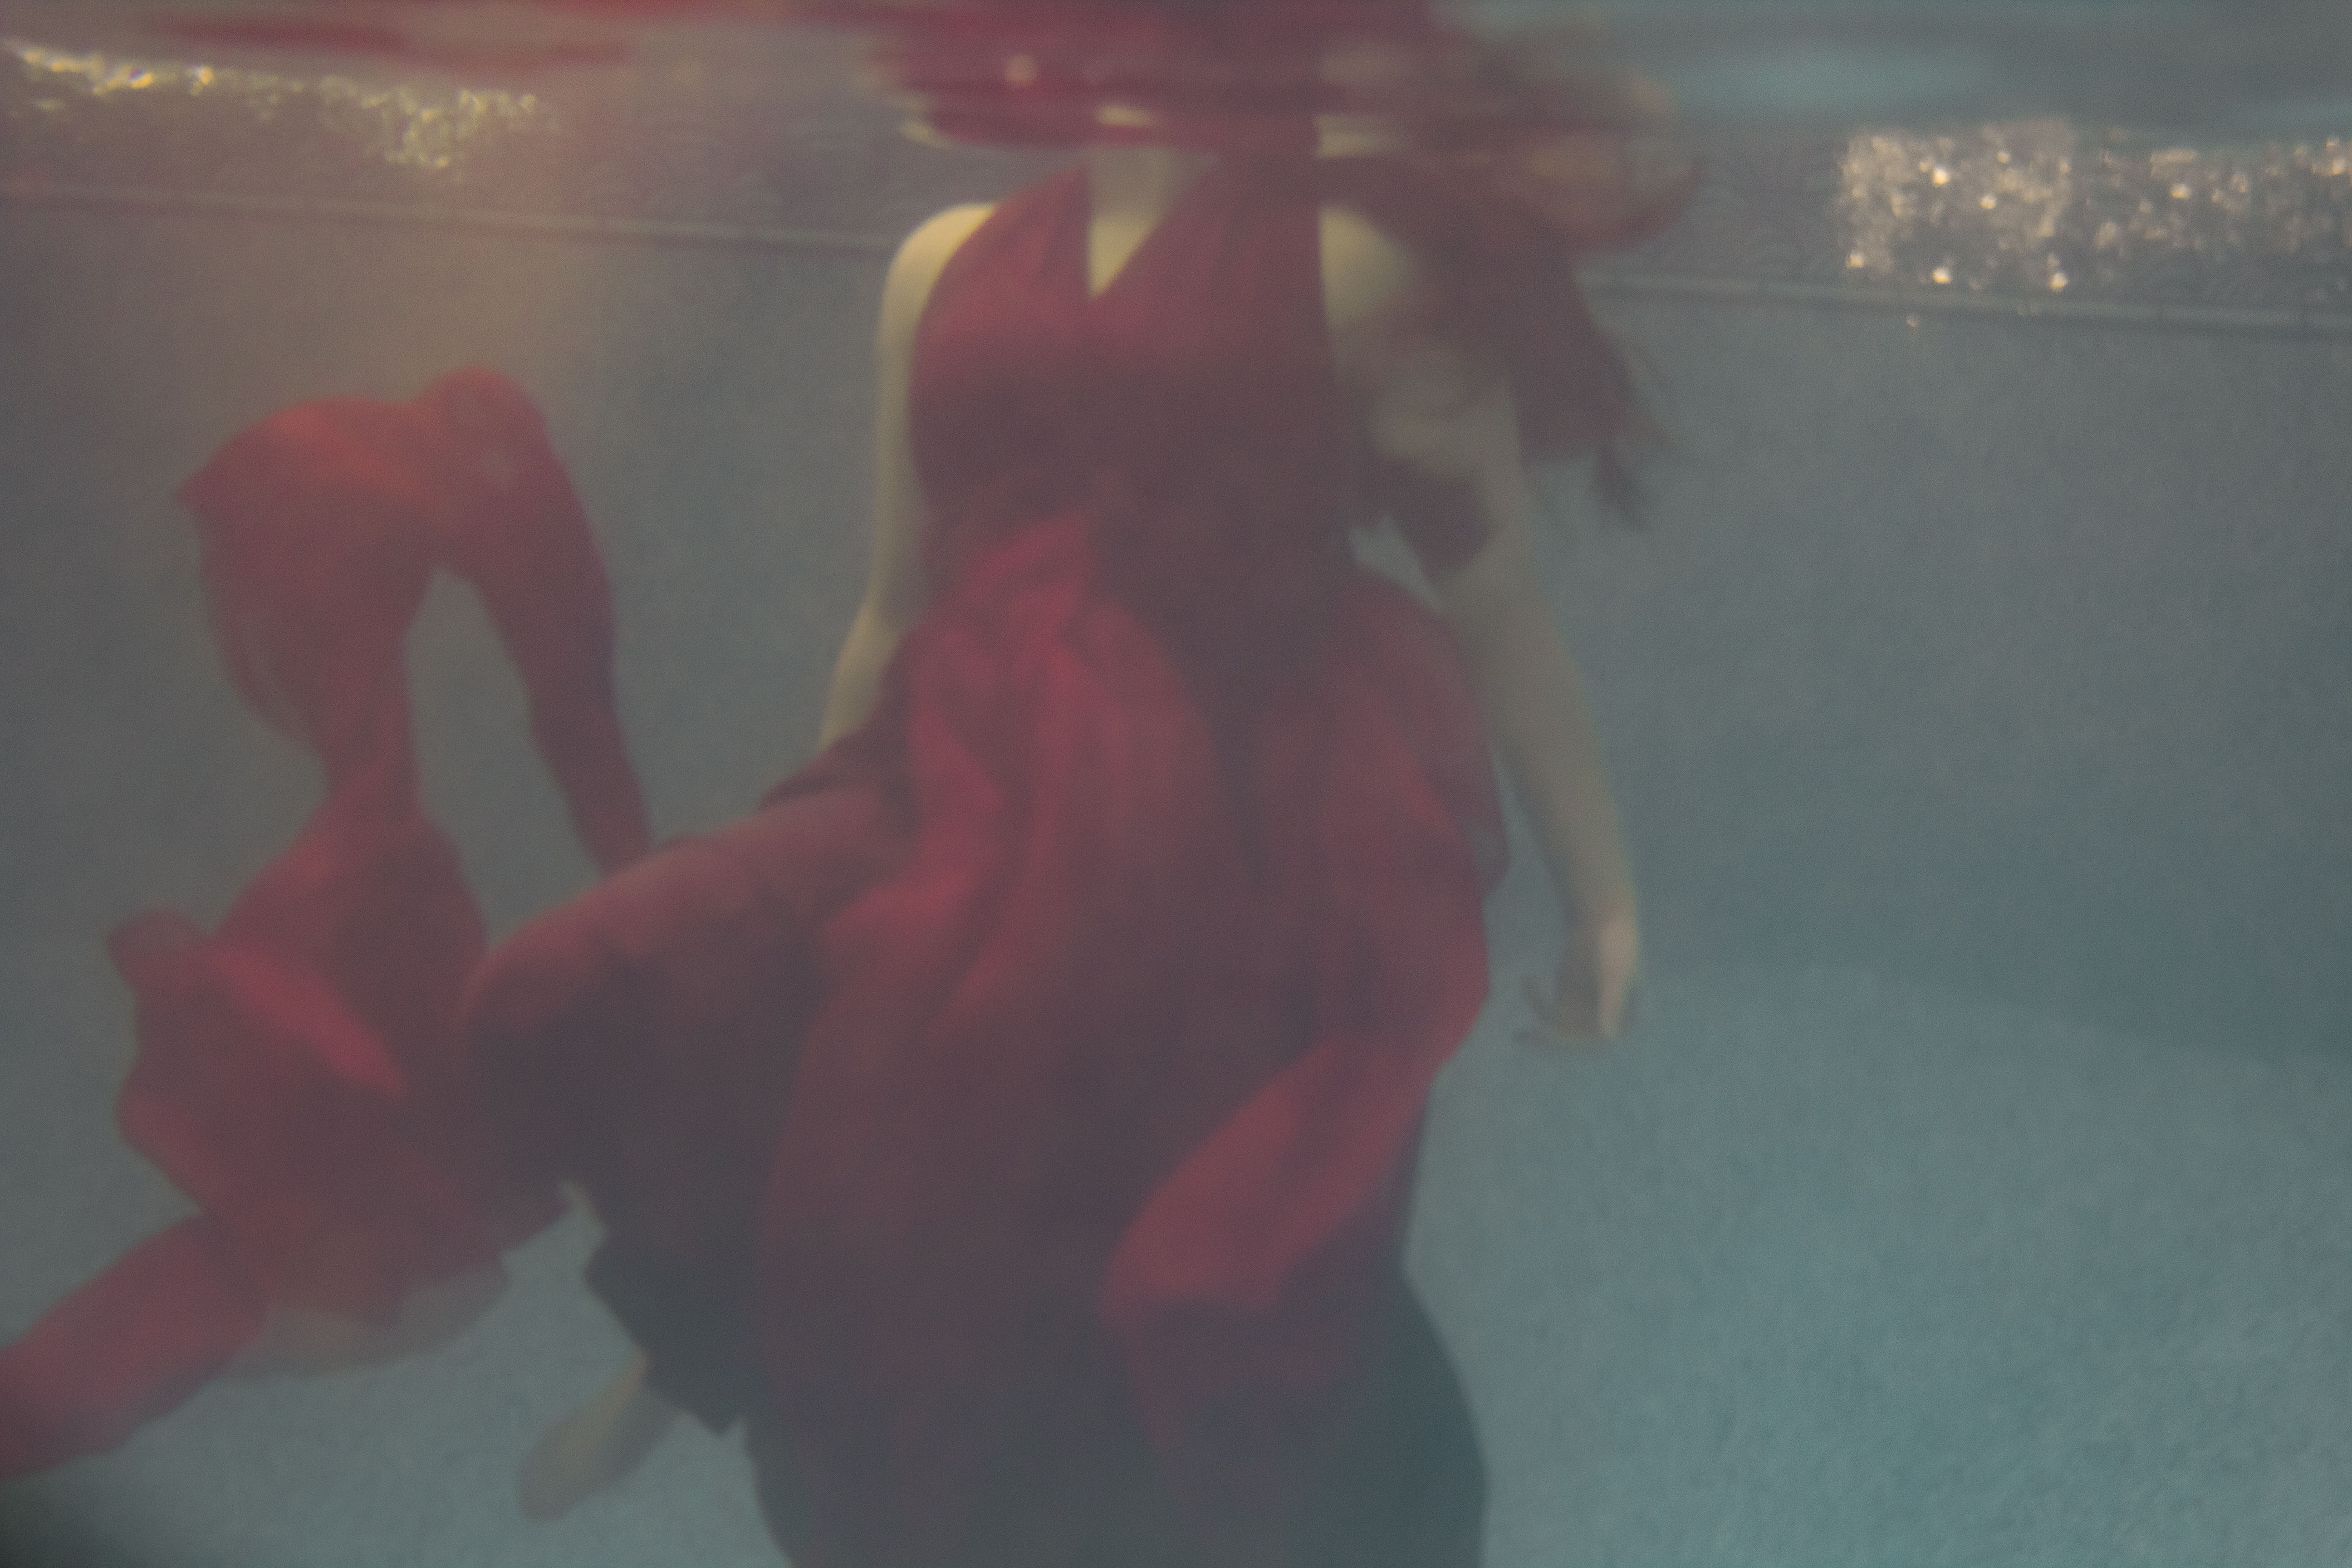 Underwater shot of a woman in a red dress, her head not visible above the surface.